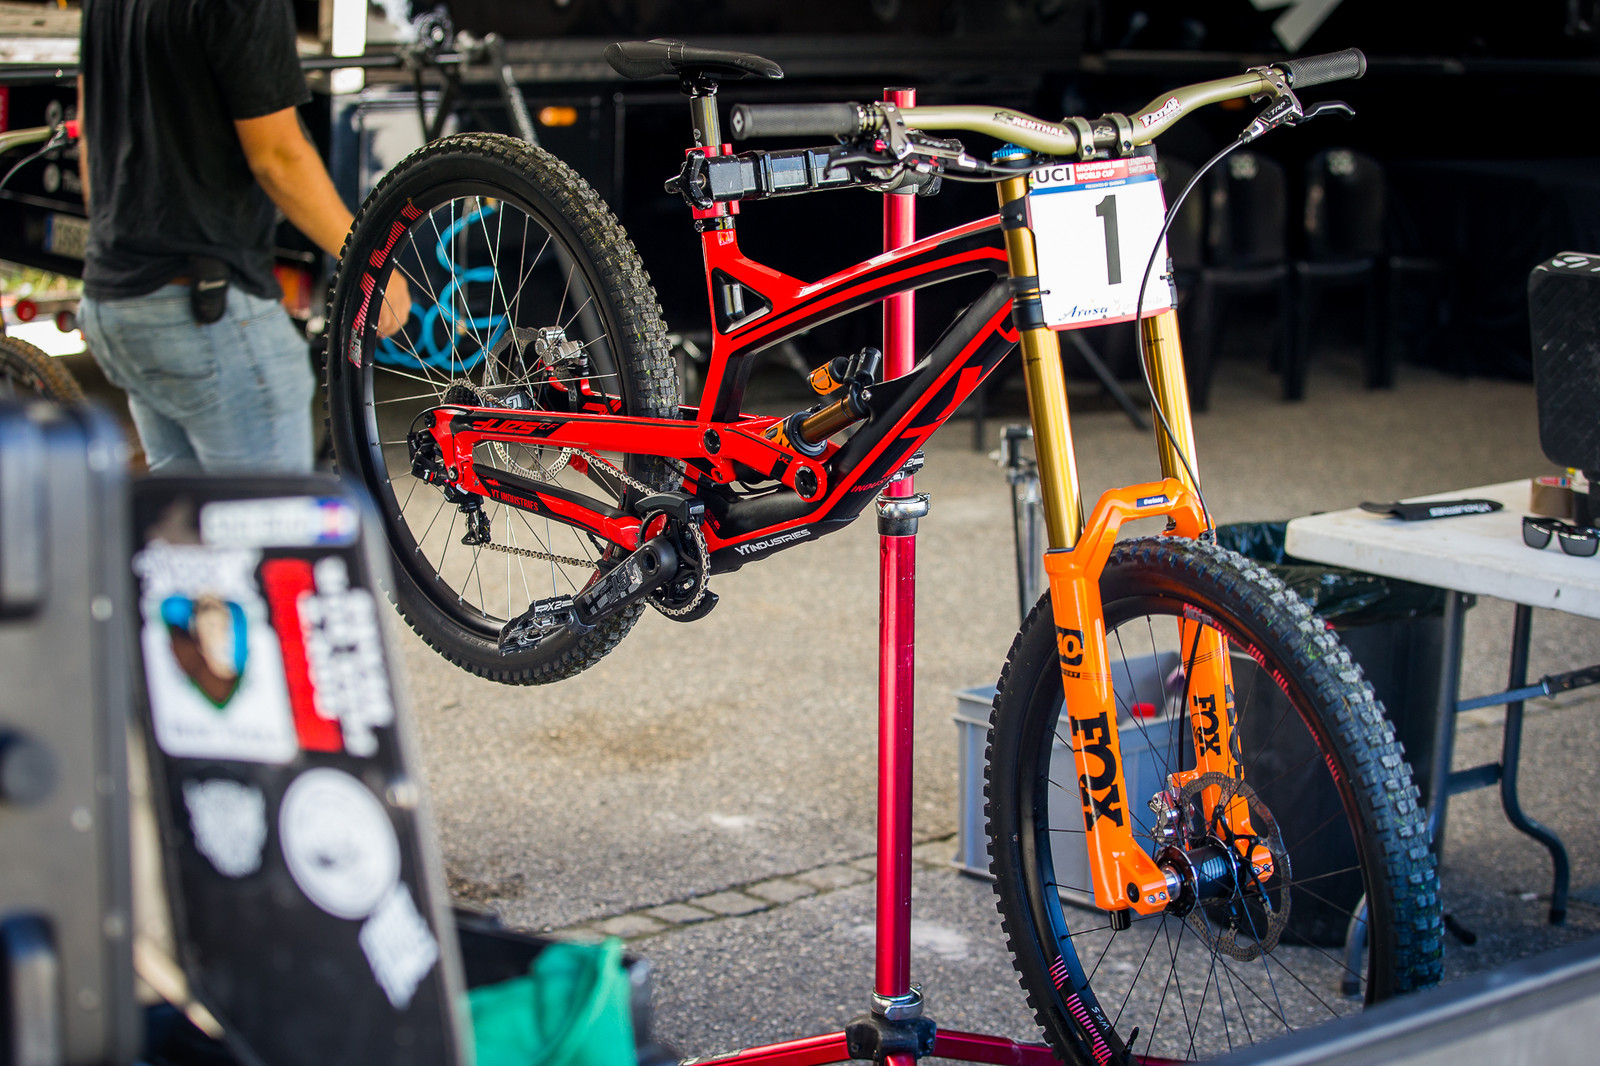 Aaron Gwin's YT Tues with New Orange FOX 40 - PIT BITS - Lenzerheide World Cup - Mountain Biking Pictures - Vital MTB